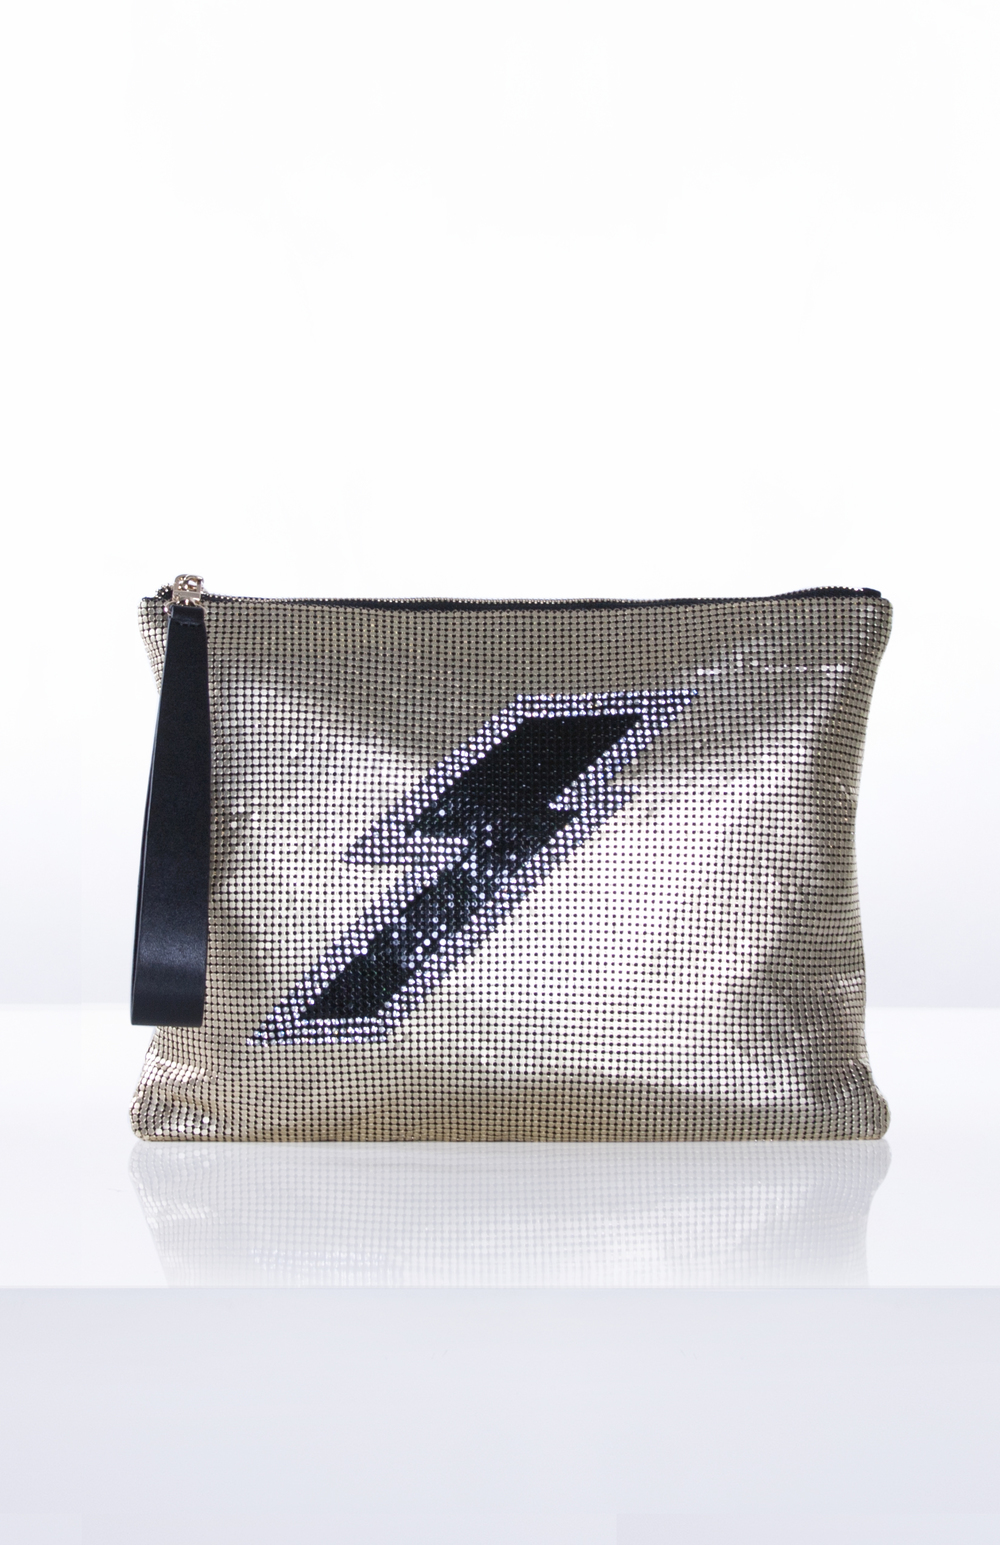 JUPITER MESH CLUTCH- Gold + Black